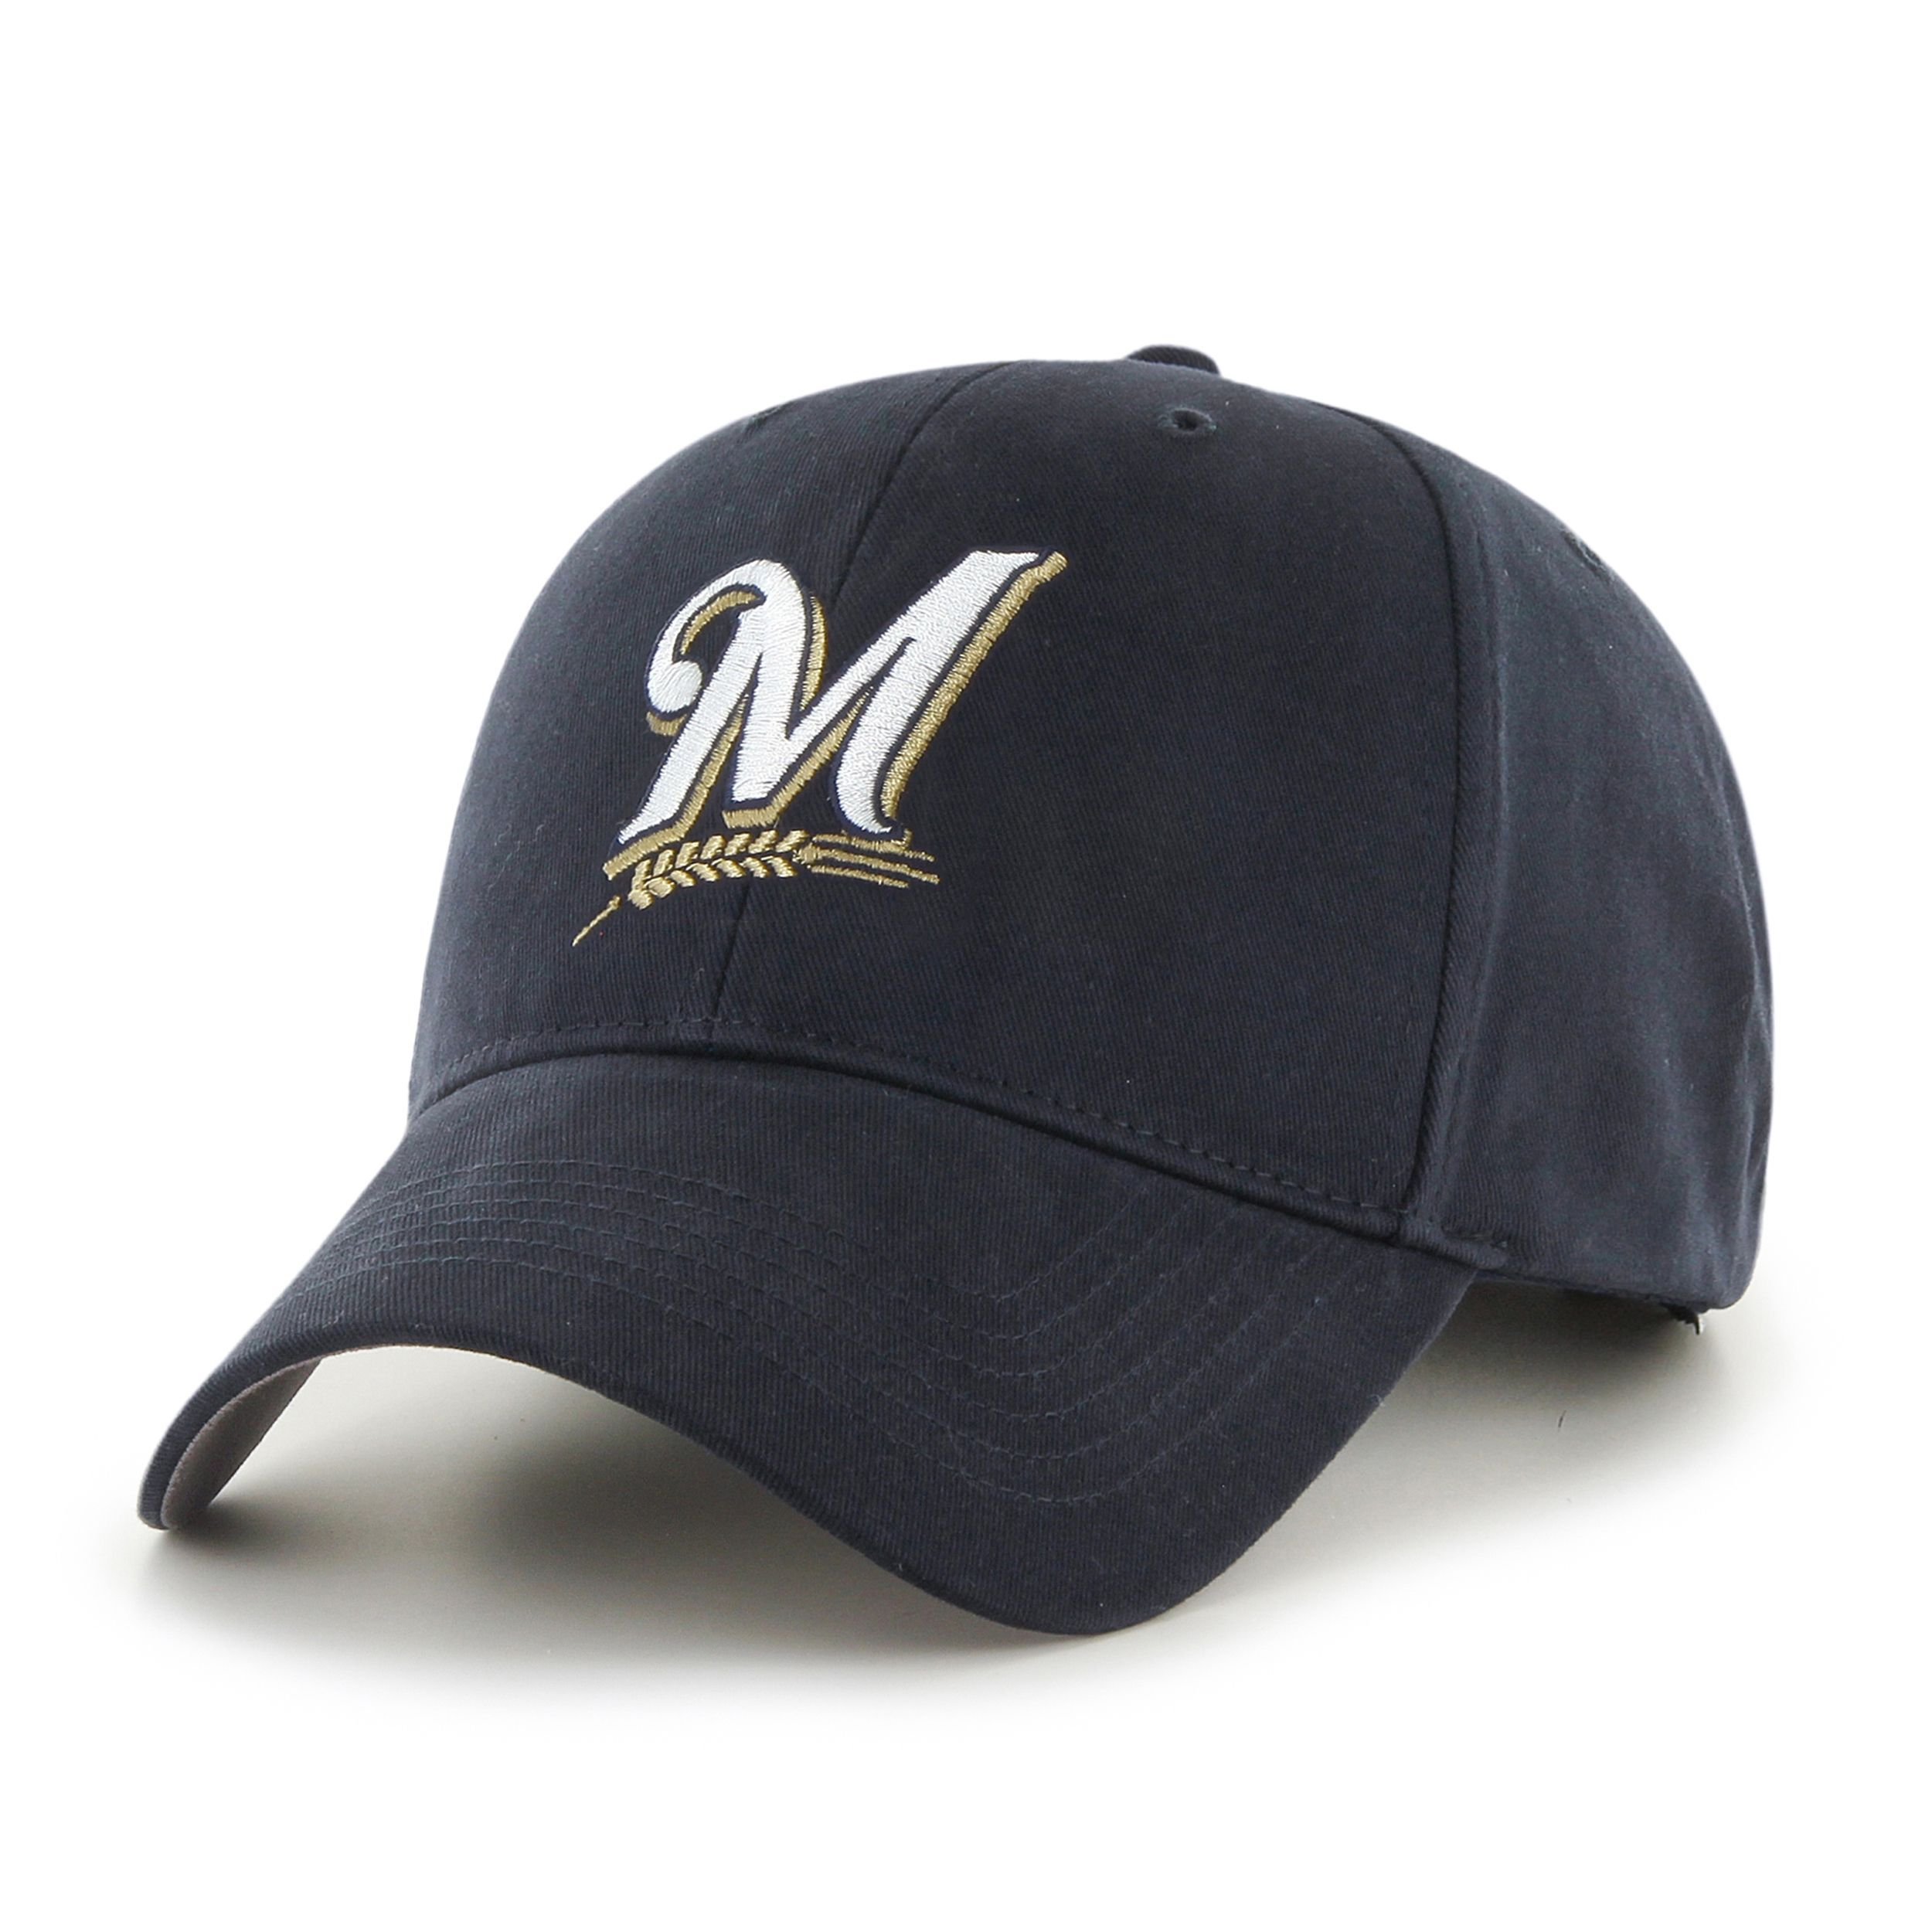 reputable site 9380e 010c0 47 Brand Milwaukee Brewers MLB Basic Hook and Loop Hat (Milwaukee Brewers),  Size One Size Fits All (cotton)